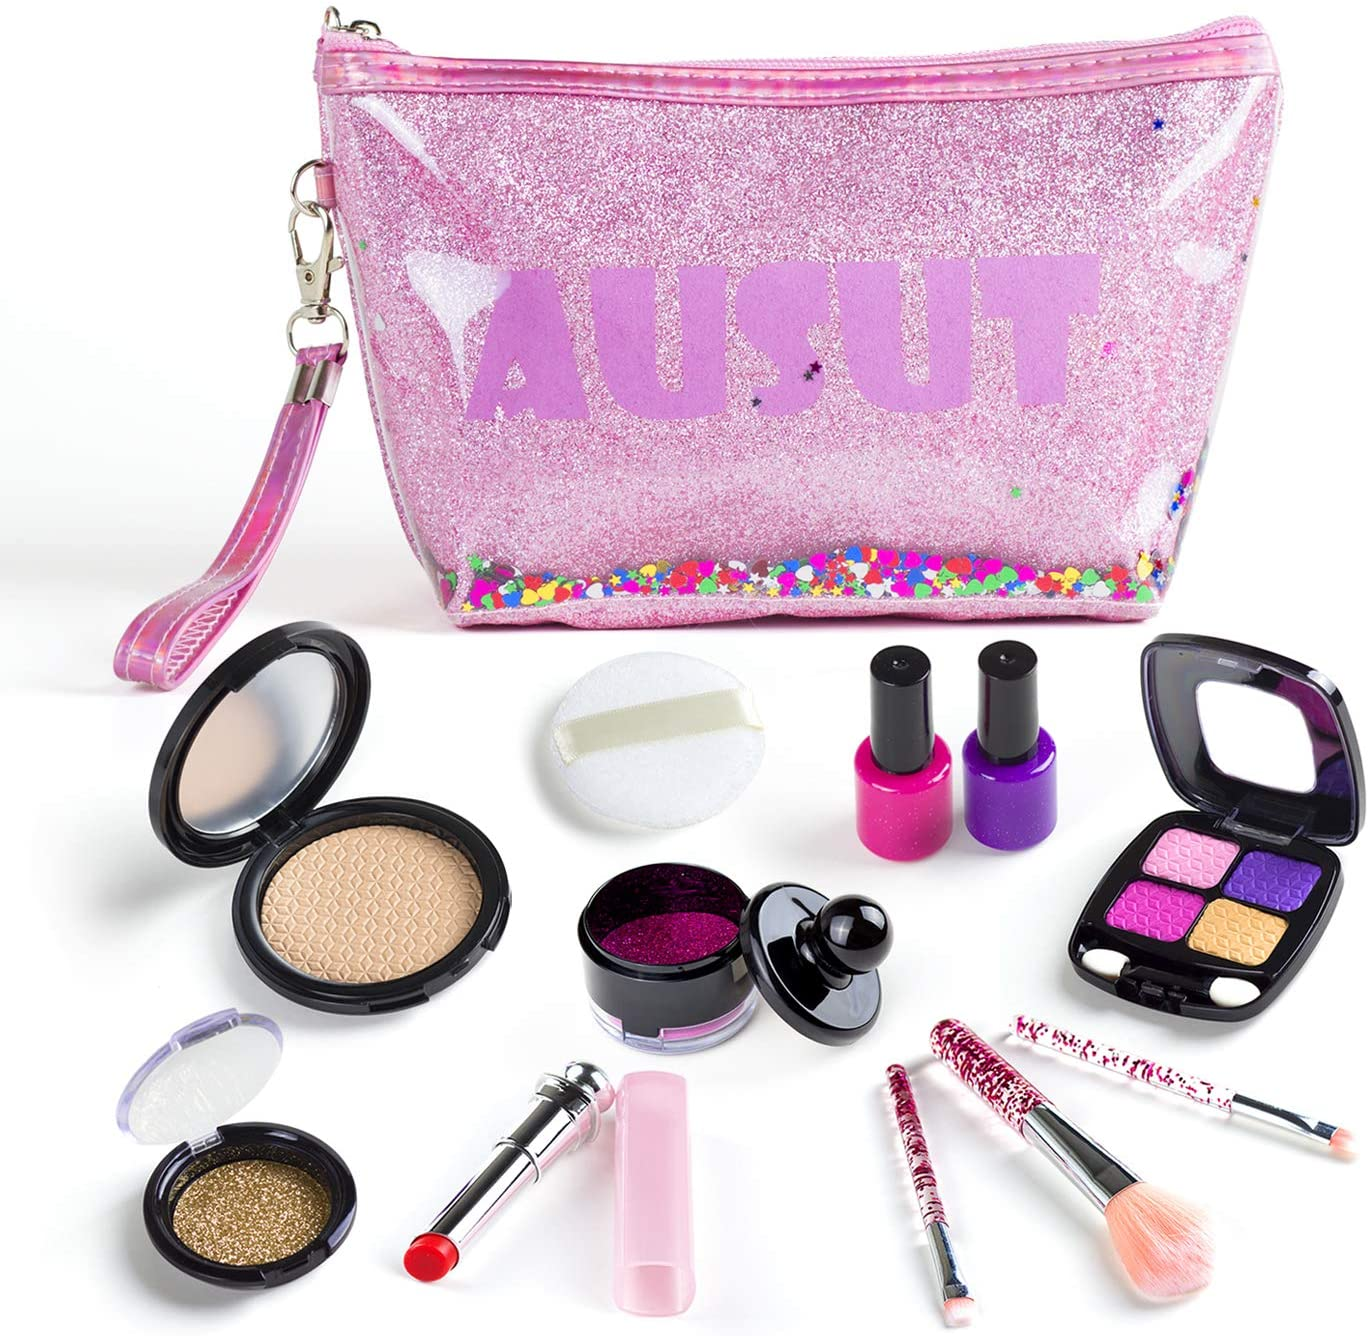 AUSUT Kids Makeup Kit for Girl - Pretend Make Up Princess Dress Up Play Set with Cosmetic Bag for Toddler Girls Birthday Ideas Toys (Not Real)